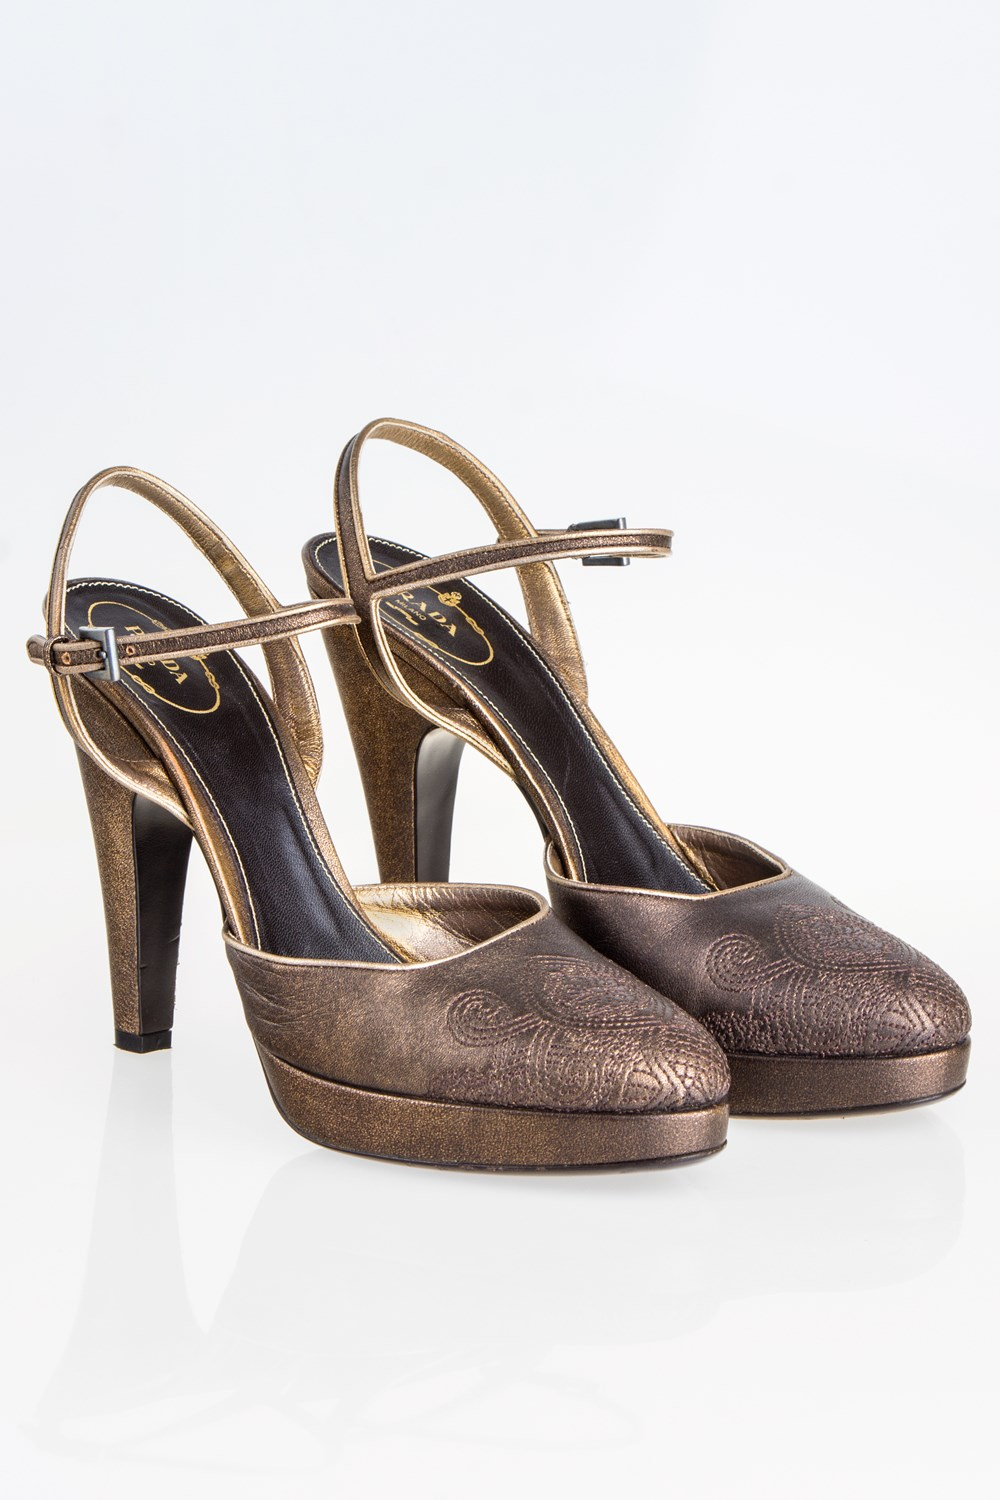 01c254c9c47 Prada Bronze Embroidered Leather Pumps   Size  41 - Fit  True to size ...